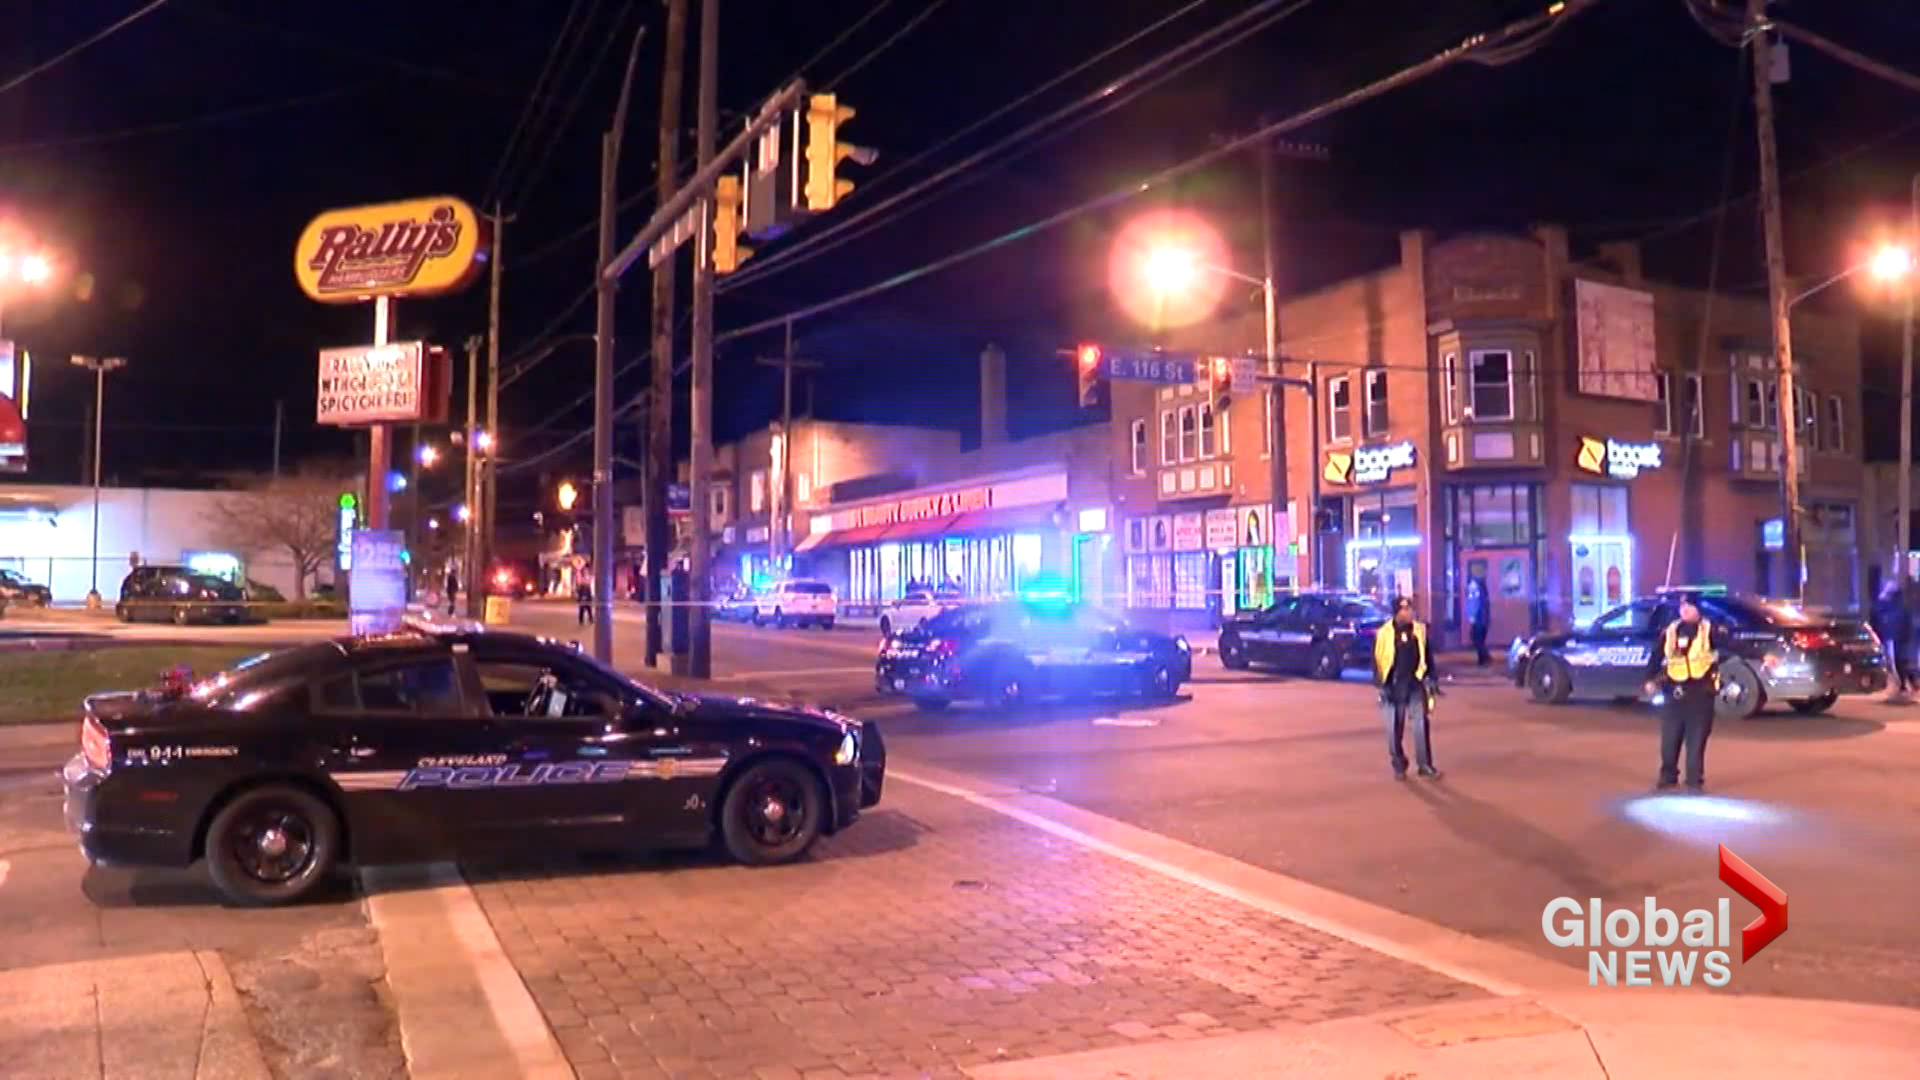 1 child killed, 5 others injured after street shooting in Cleveland